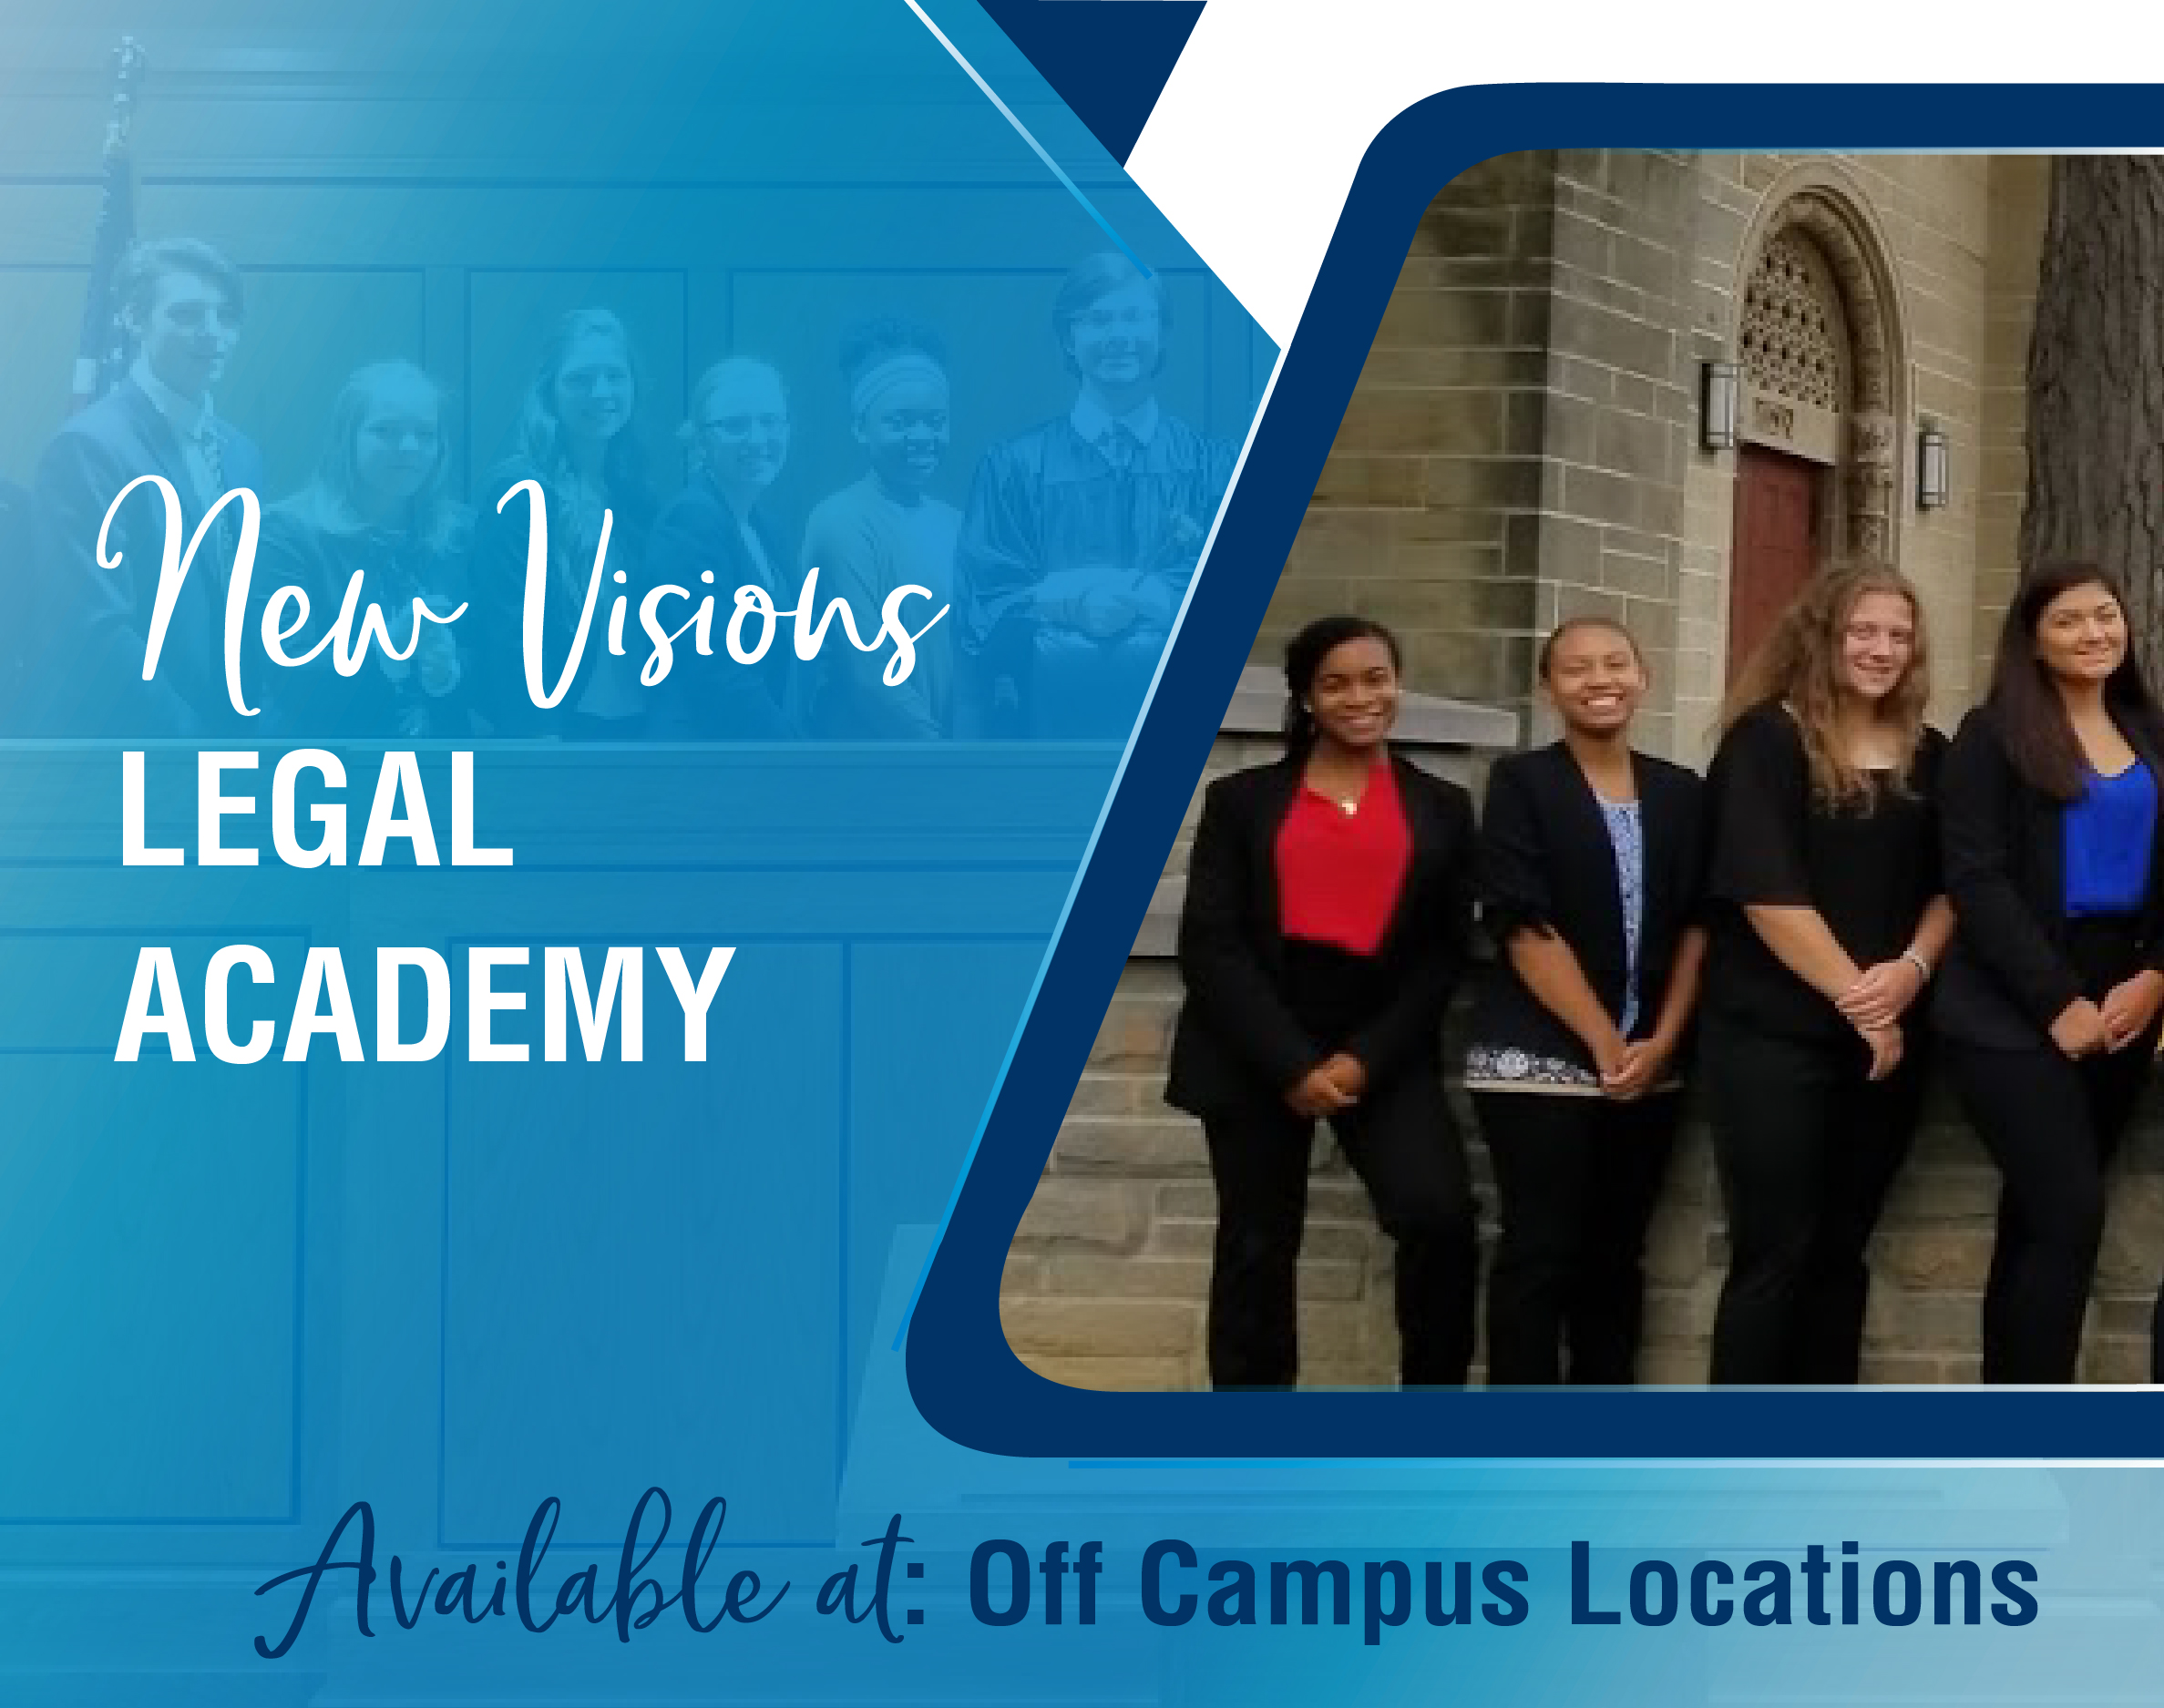 New Visions Legal Academy